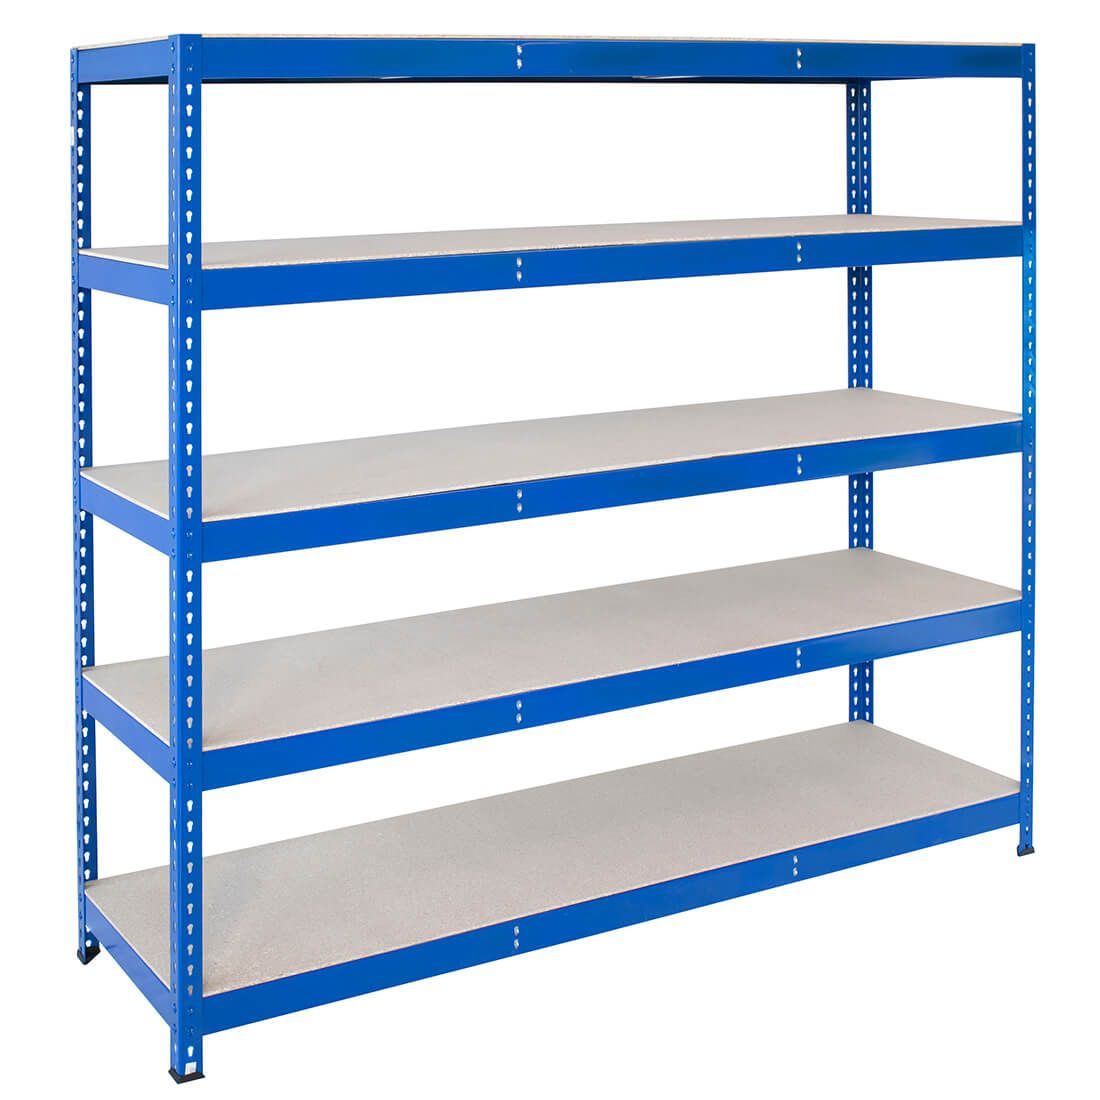 What are the heavy shelves?